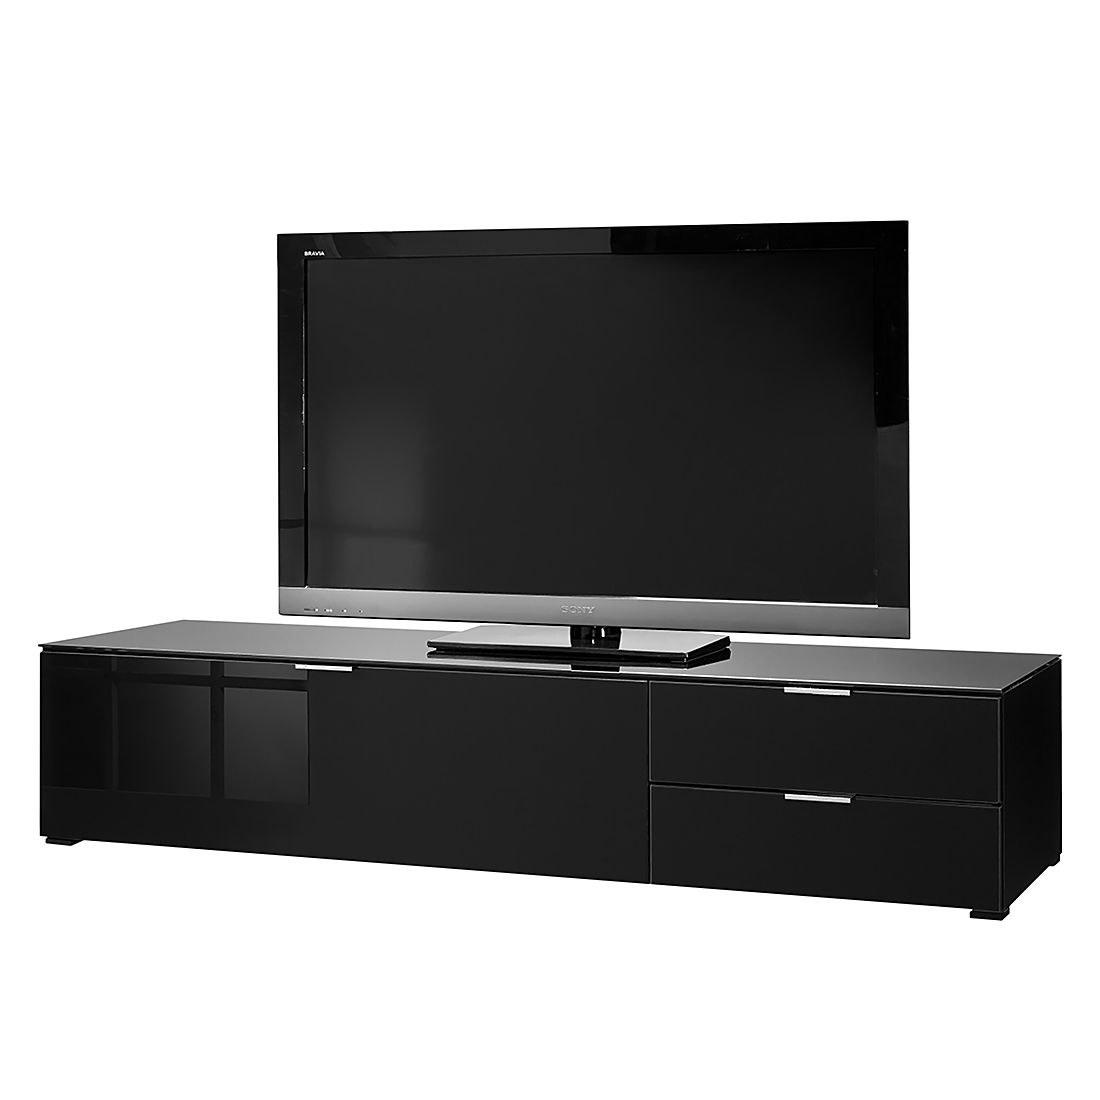 tv lowboard cleo iii schwarz cs schmal jetzt kaufen. Black Bedroom Furniture Sets. Home Design Ideas